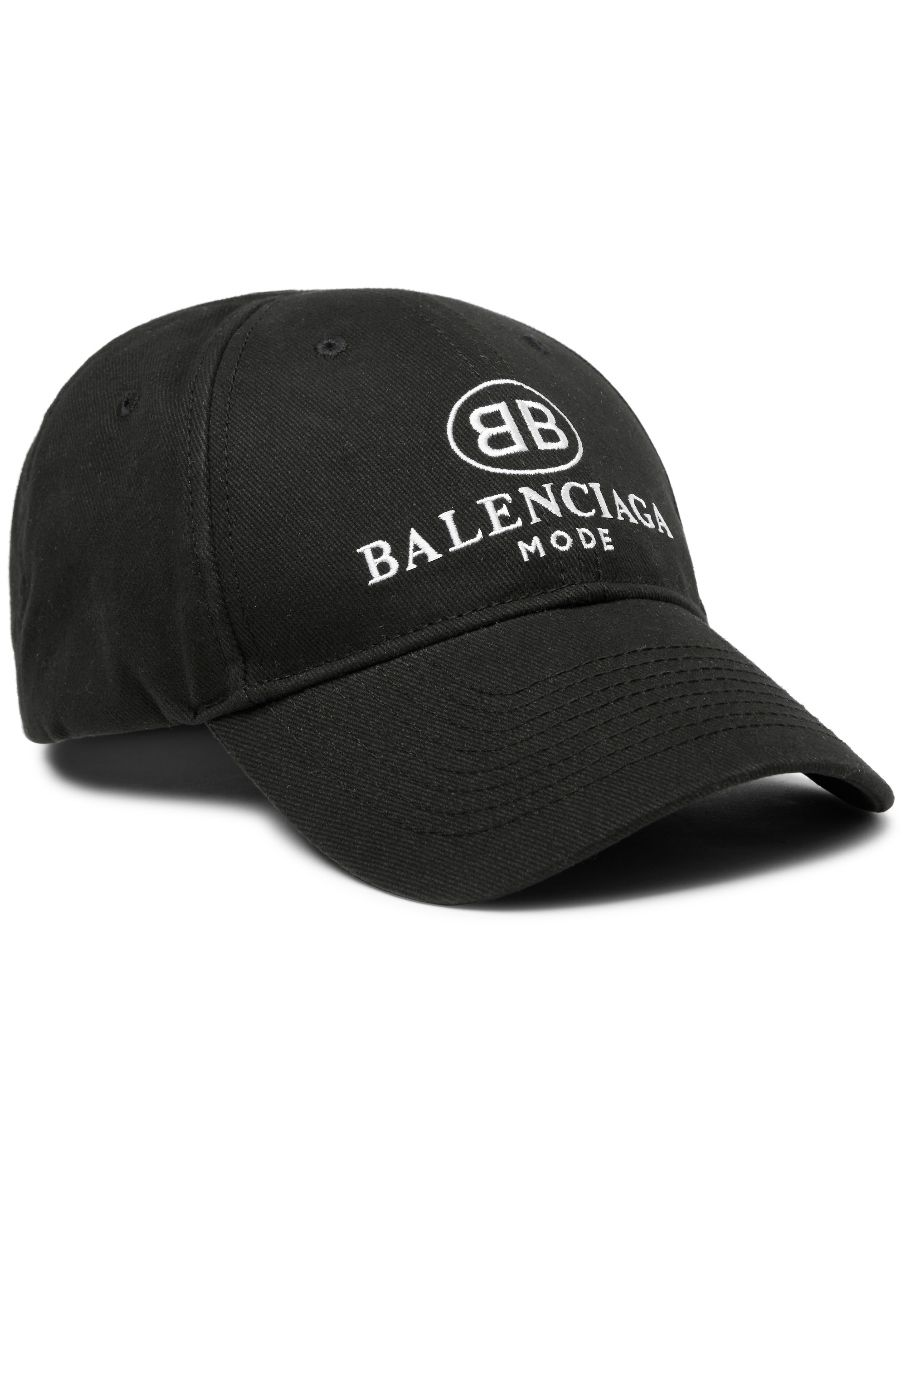 MR PORTER X BALENCIAGA Embroidered Twill Baseball Cap Black